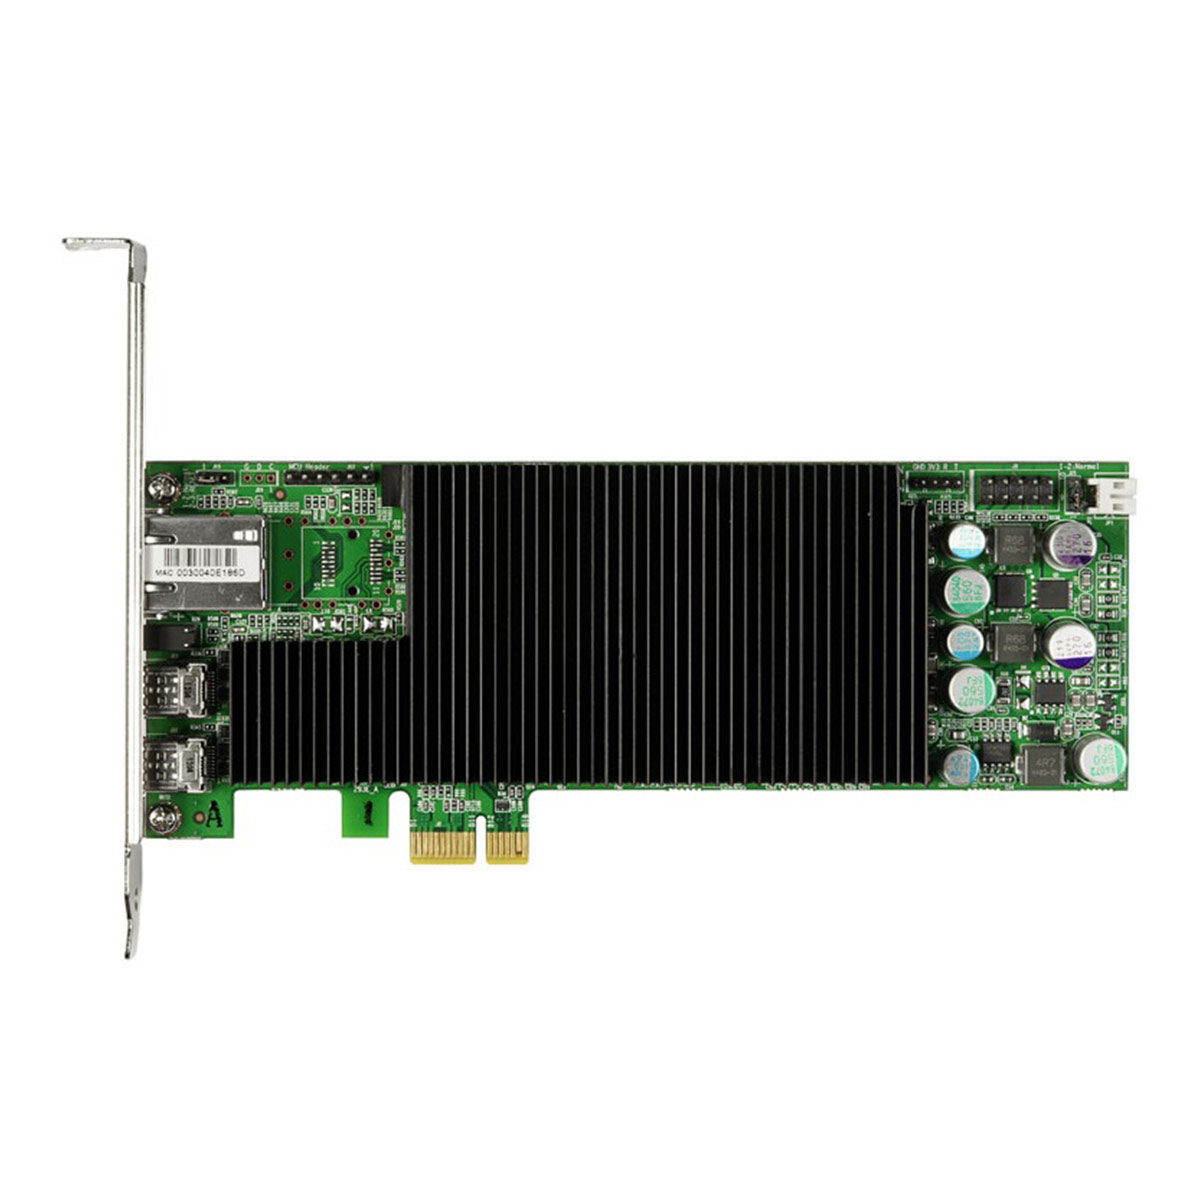 Amulet Hotkey DXL2 Half-Height PCIe Dual Video Remote Workstation Card